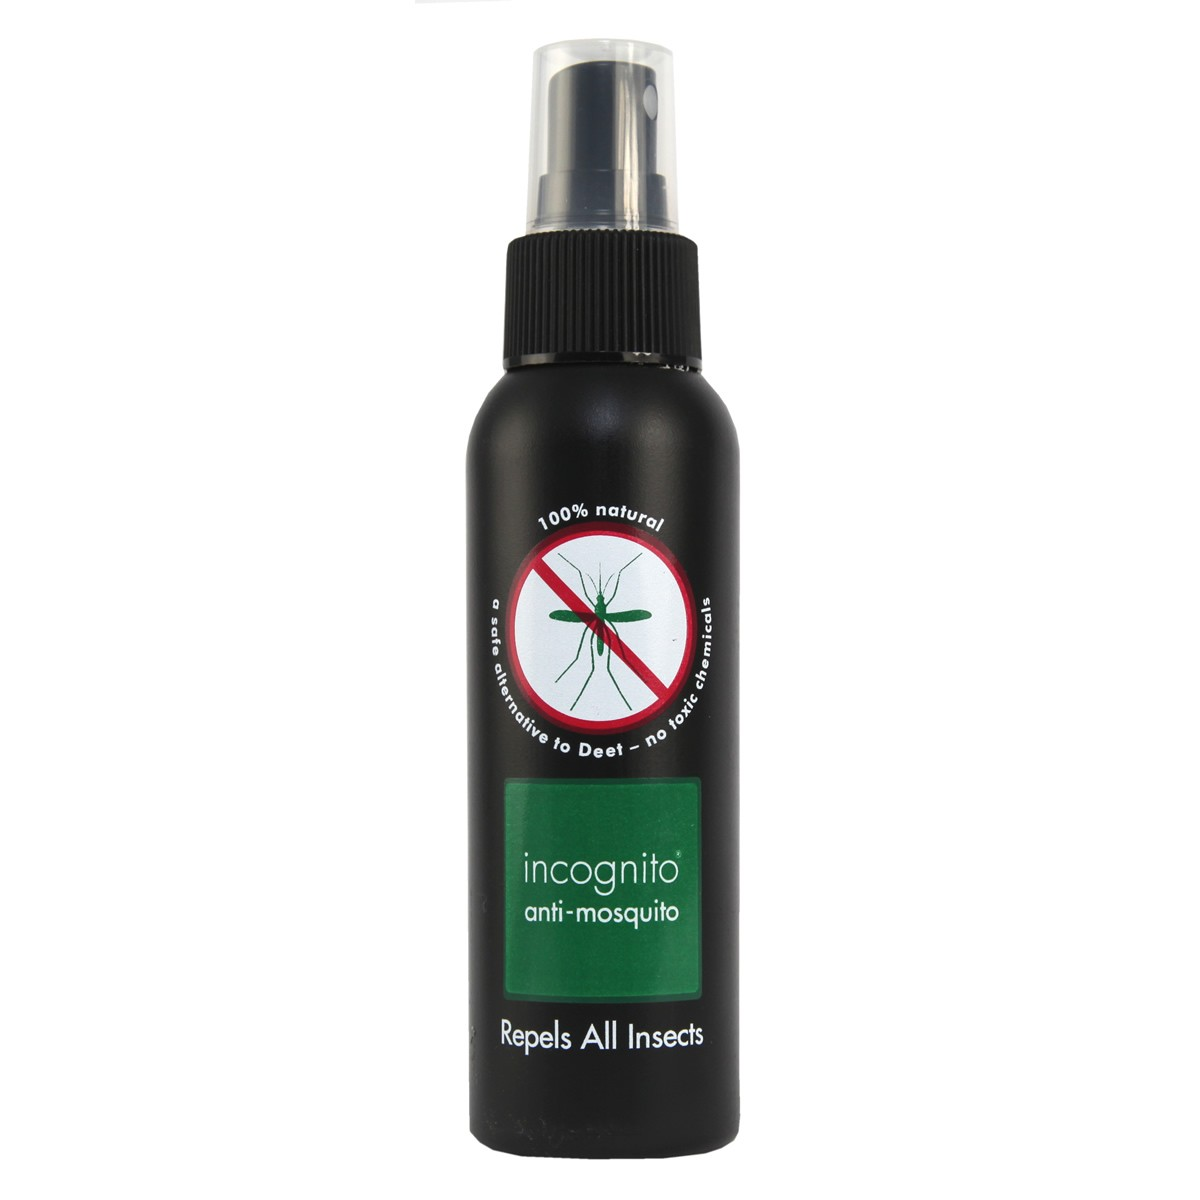 Incognito Anti-Moisquito Spray